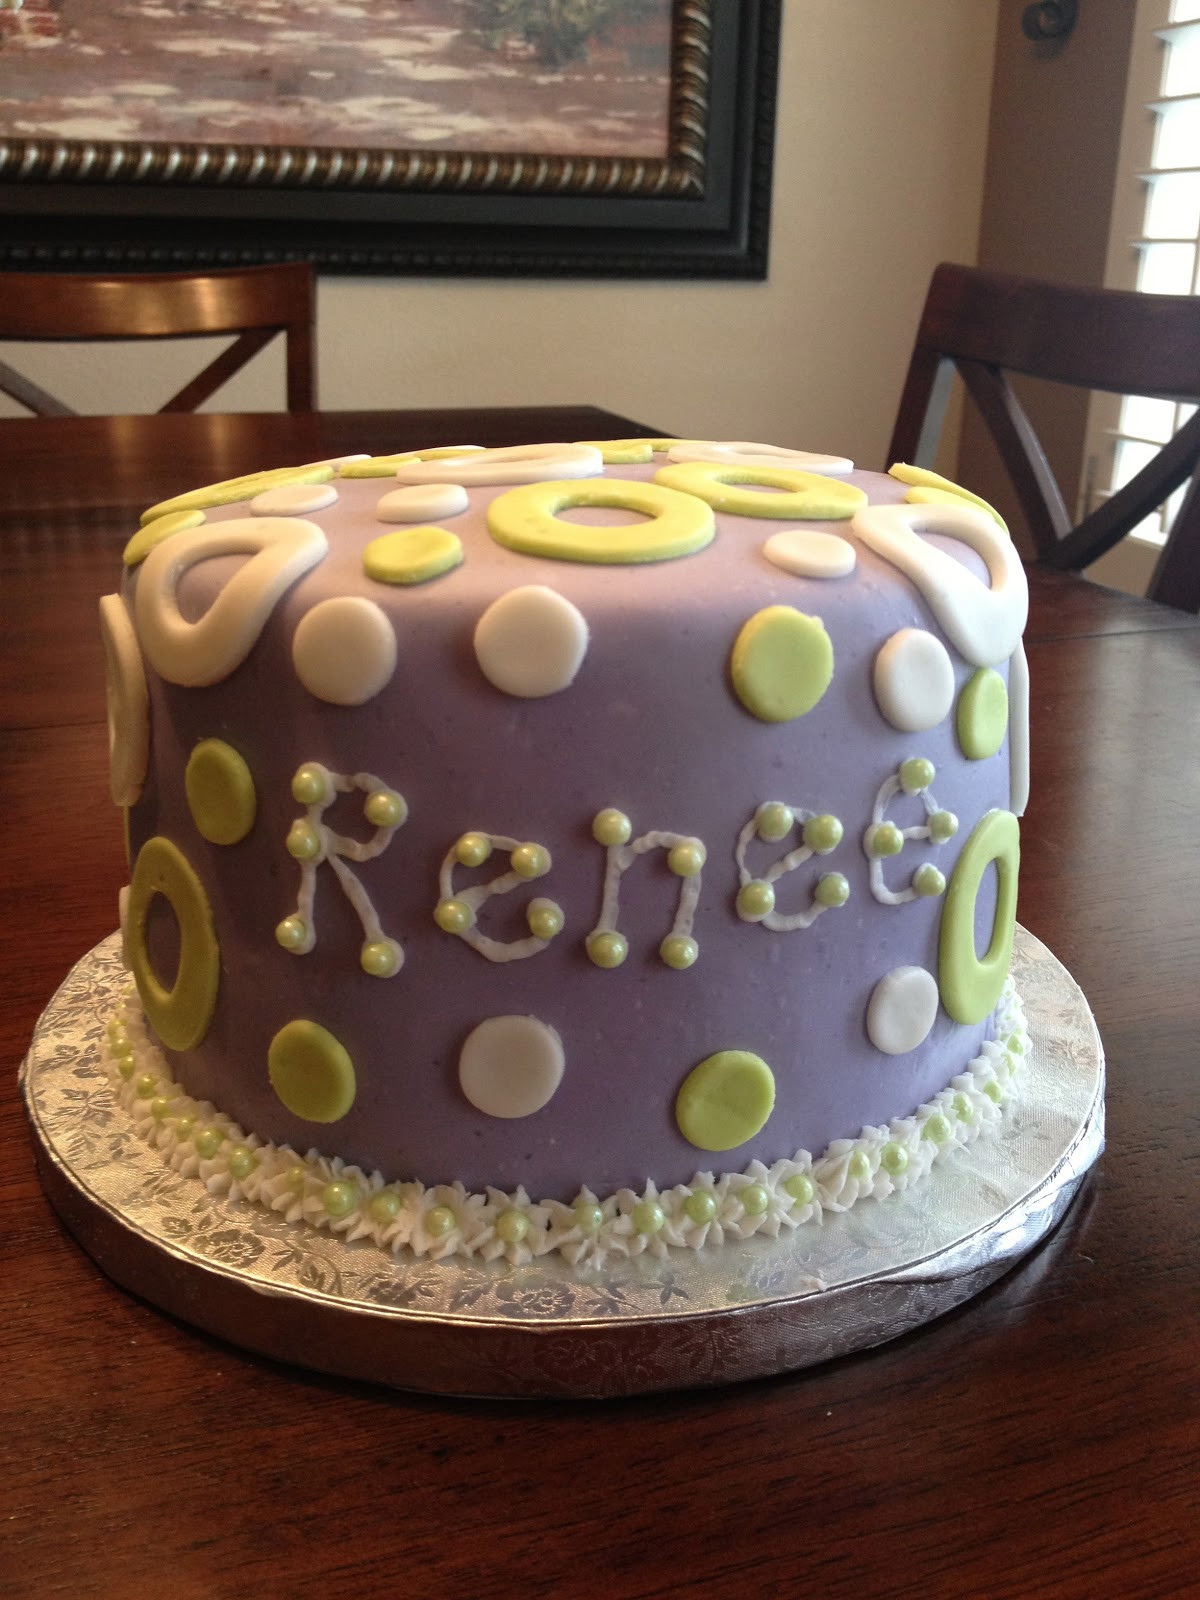 Best ideas about Happy Birthday Jessica Cake . Save or Pin Cakes I Bake by Jessica Now.